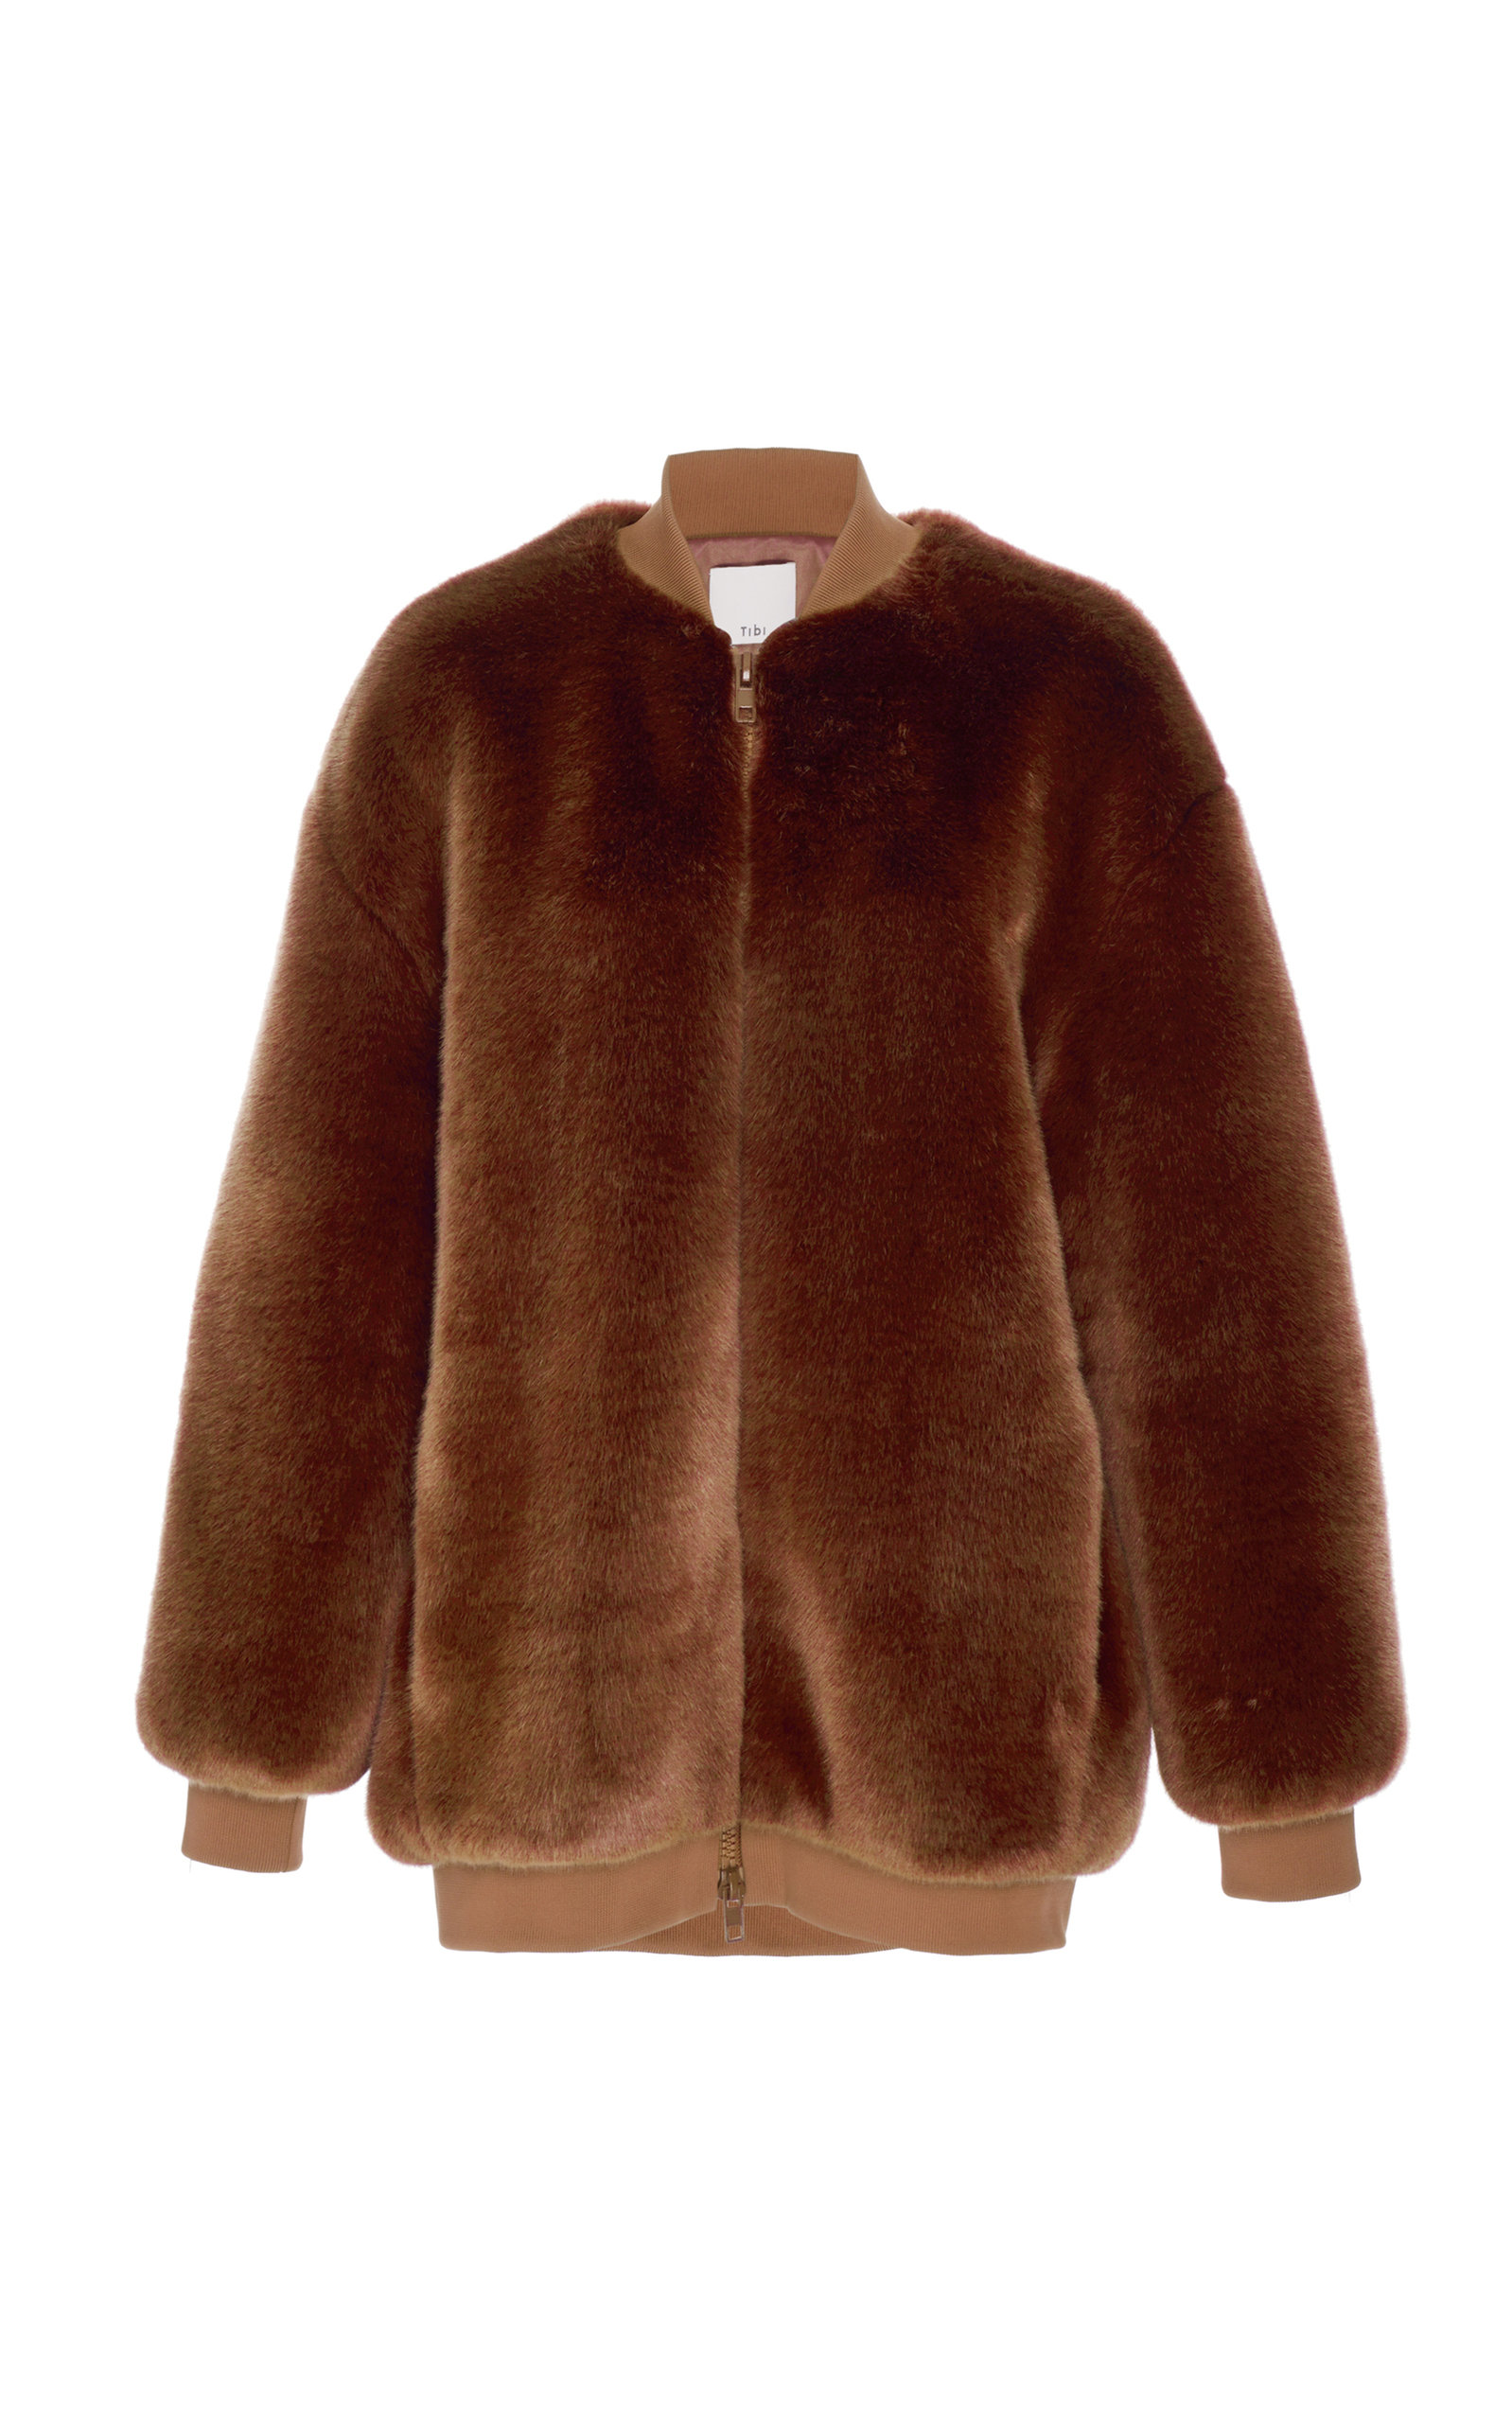 Cocoa Brown Luxe Faux Fur Track Jacket